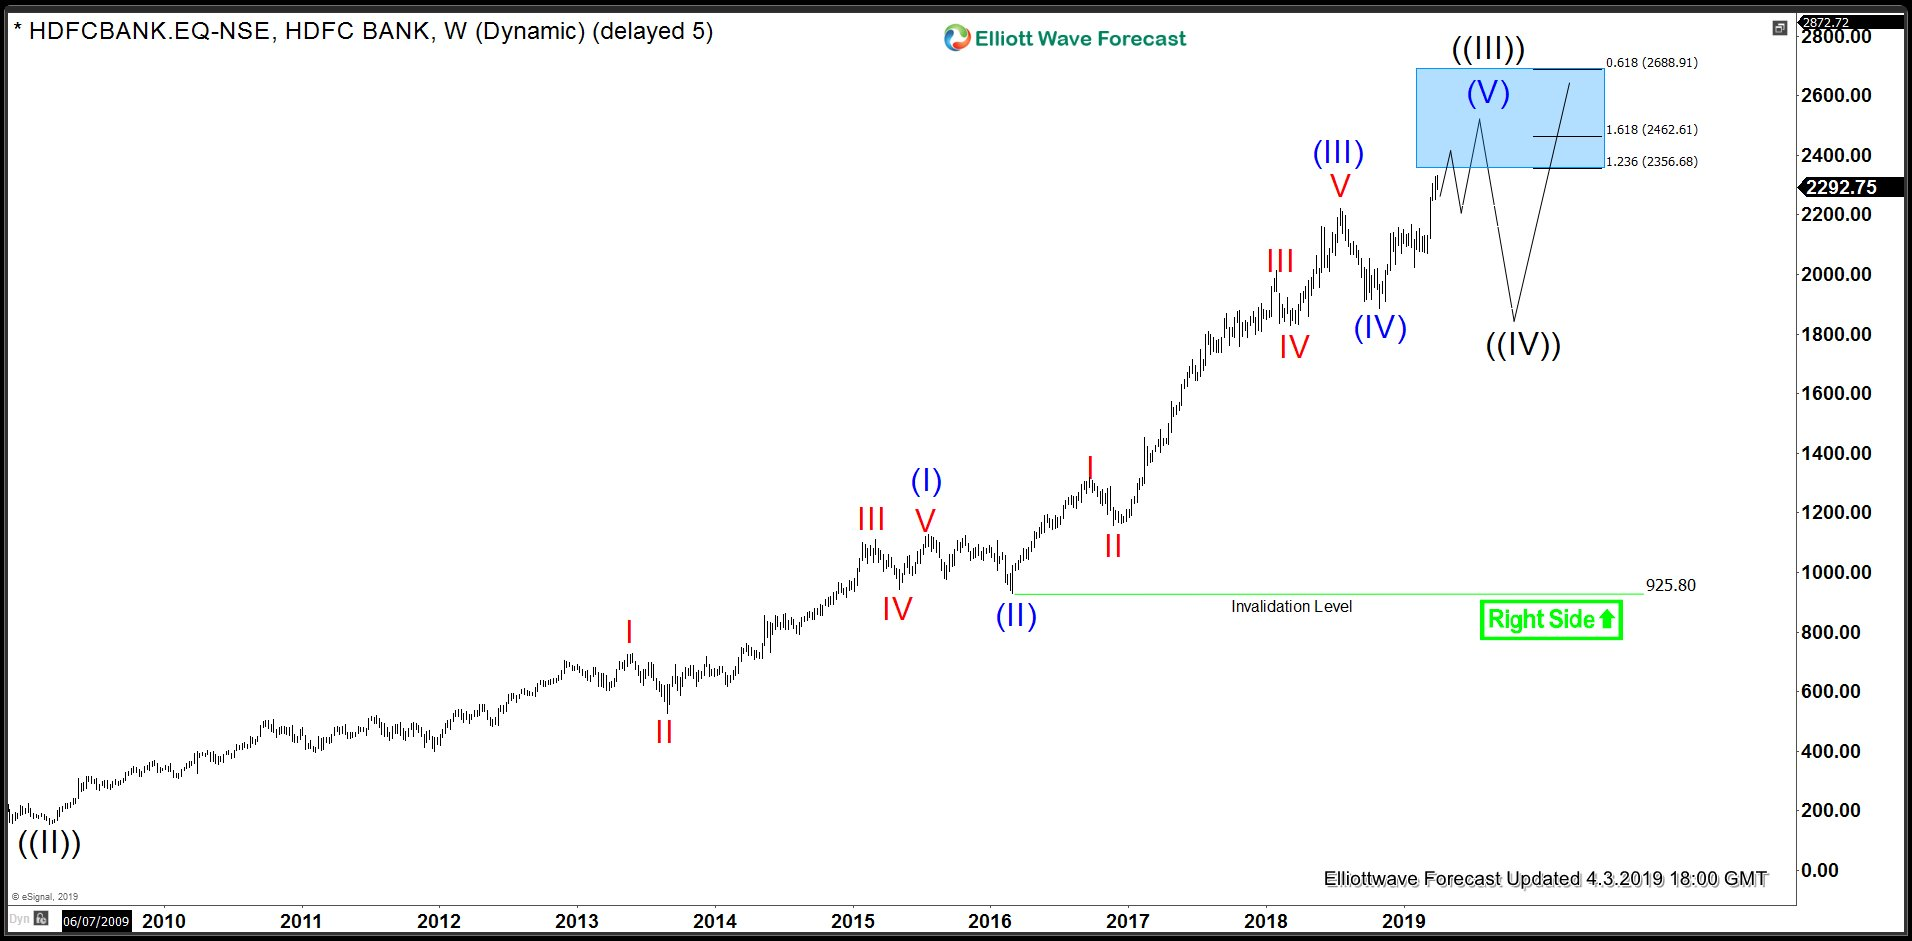 HDFC Bank Weekly Elliott Wave Analysis